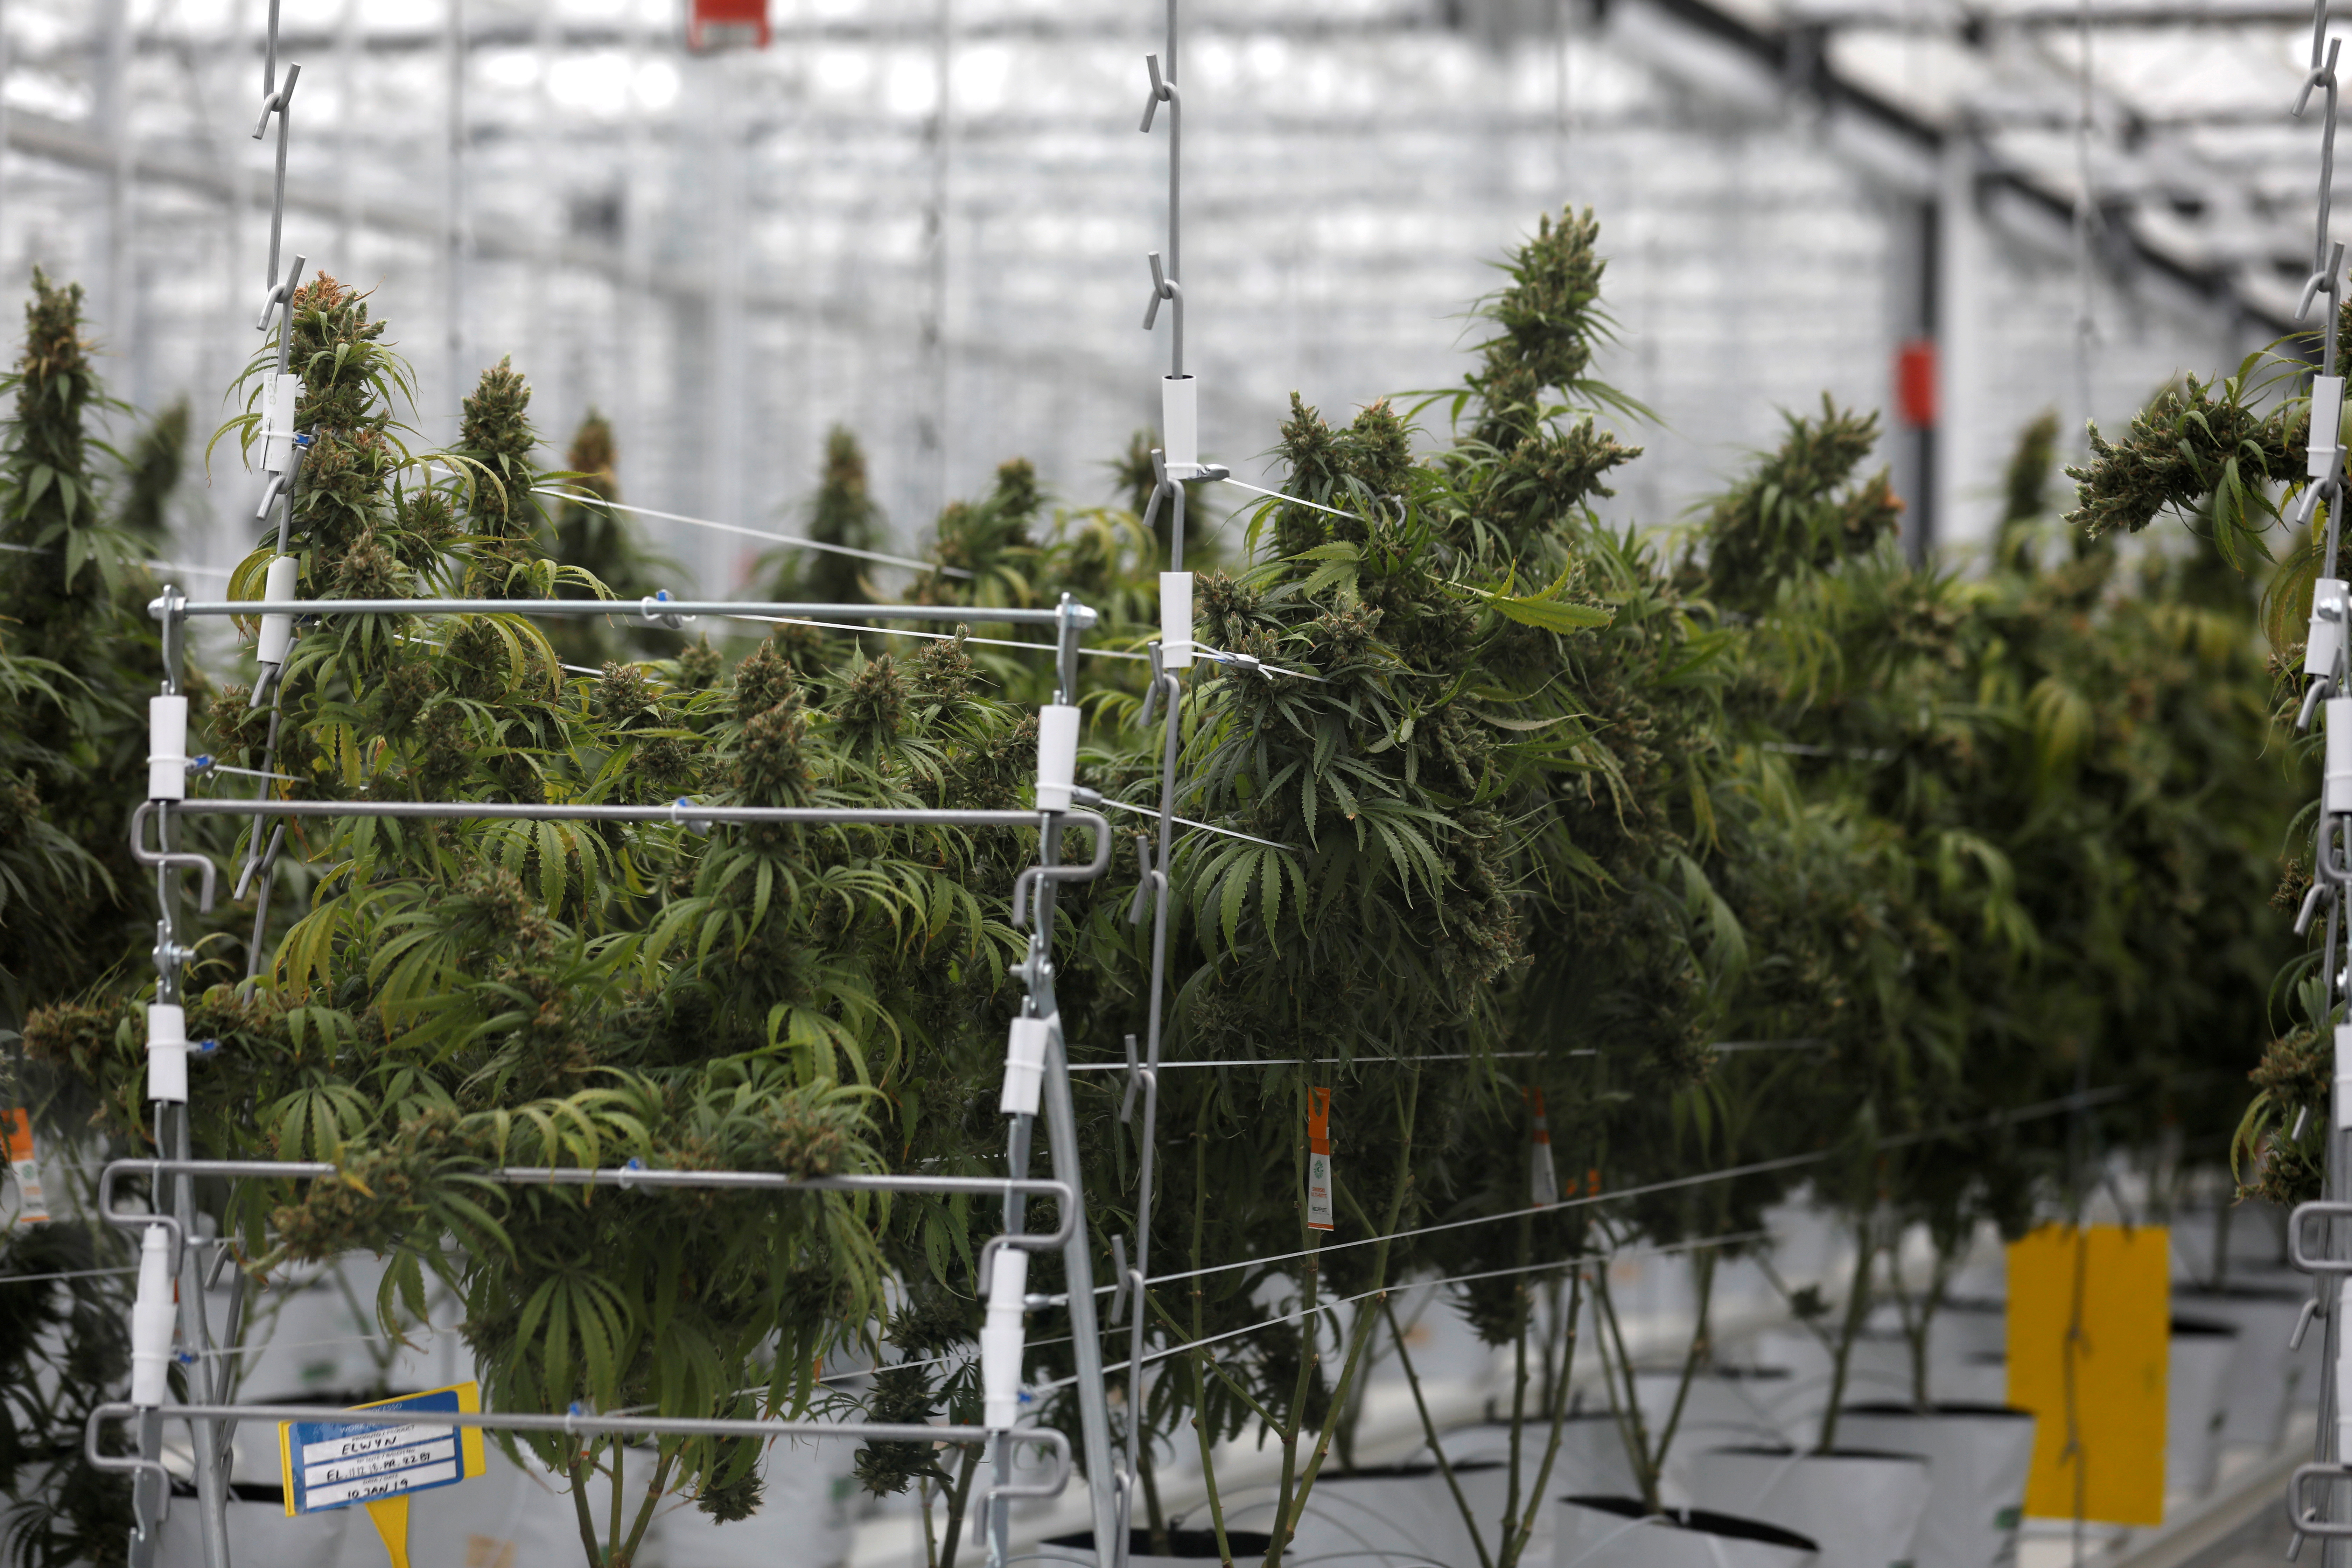 Cannabis plants grow inside the Tilray factory hothouse in Cantanhede, Portugal April 24, 2019.  REUTERS/Rafael Marchante/File Photo